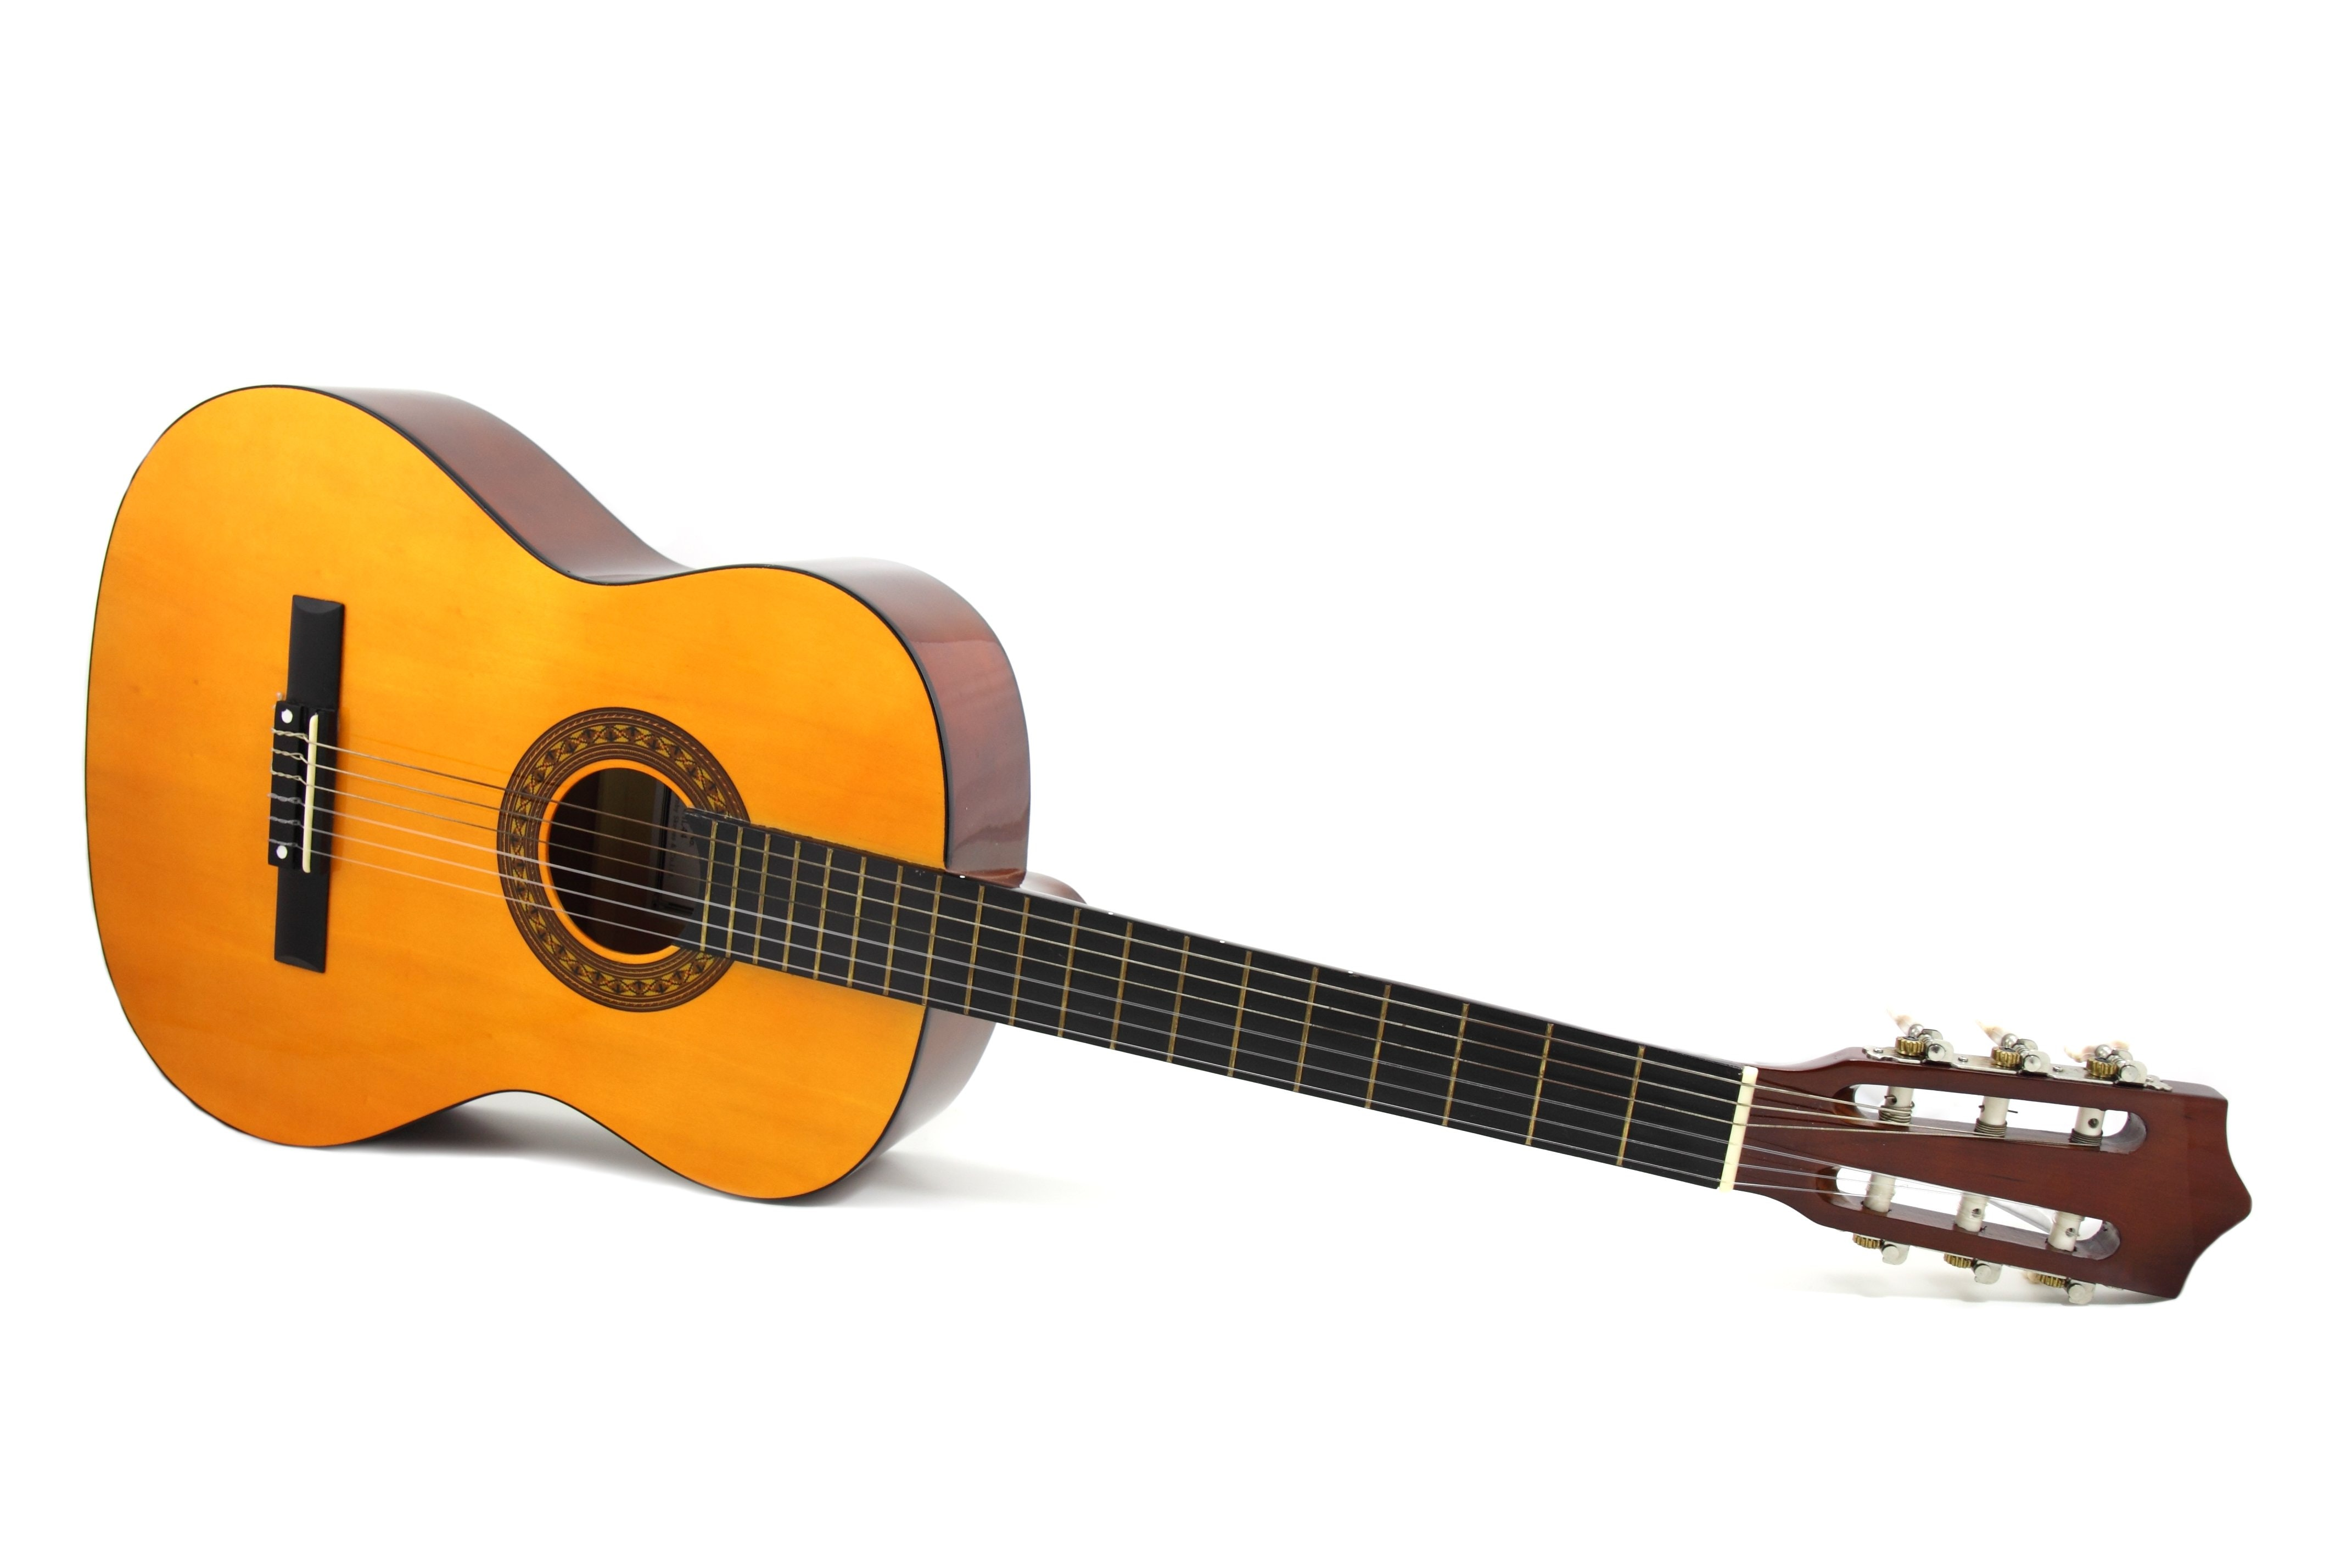 250 Beautiful Guitar Photos Pexels Free Stock Ghita Top Putih Related Searches Music Piano Electric Drums Concert